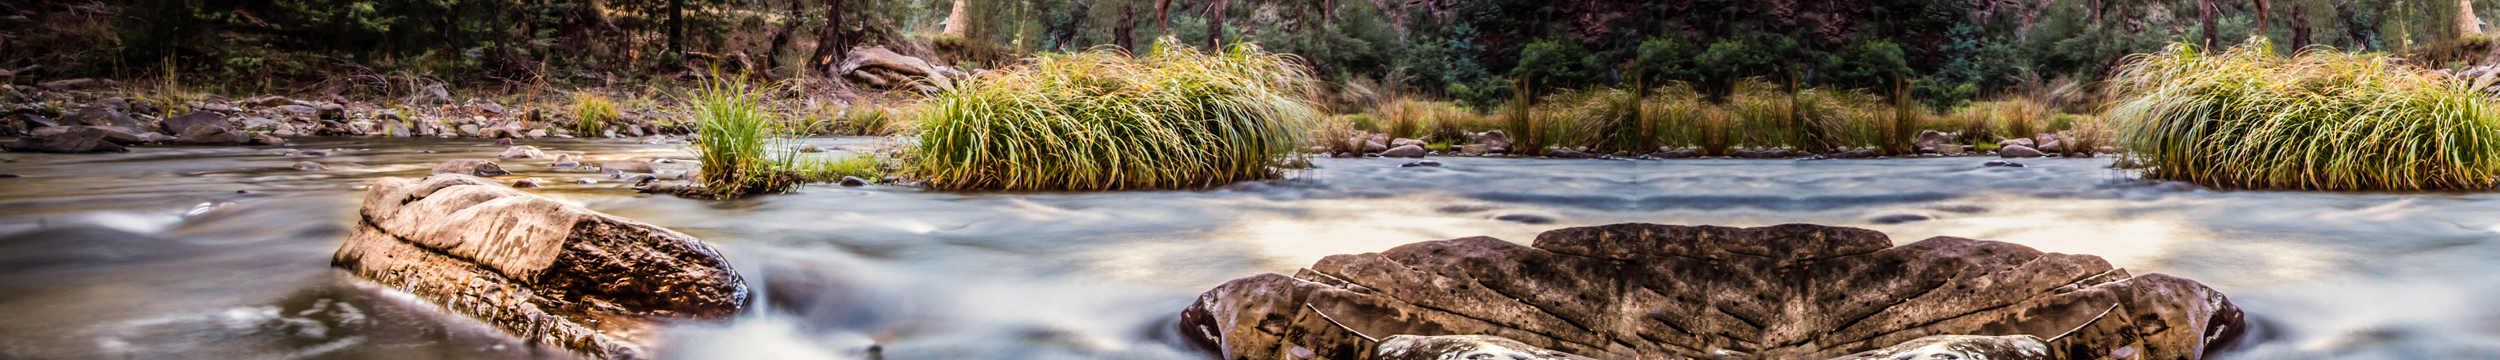 river-flow-header